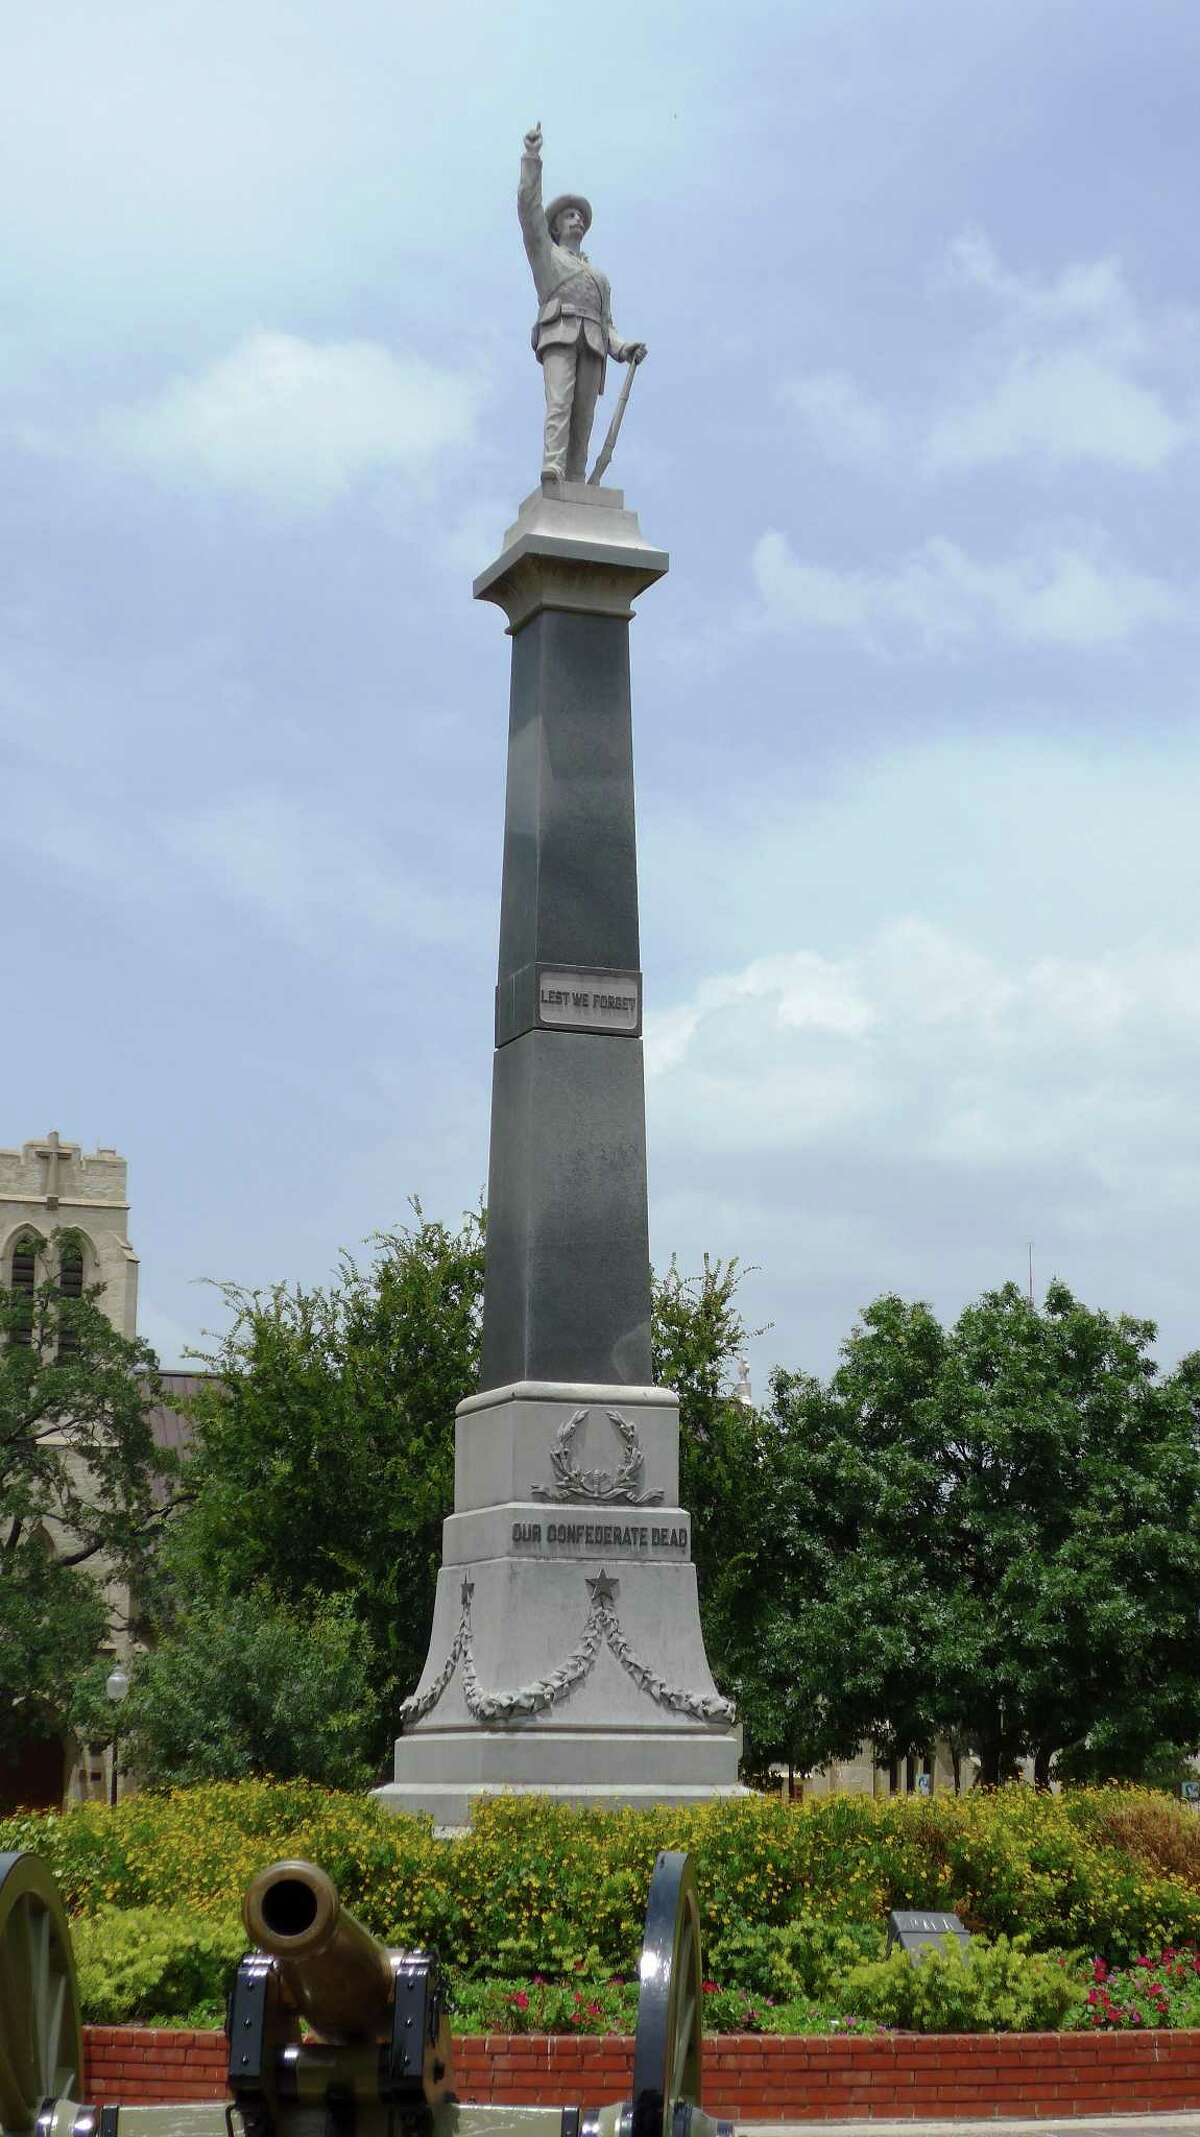 """A monument to Confederate war dead, erected in city-owned Travis Park in 1899, says """"Lest We Forget"""" and """"Our Confederate Dead."""" Shown Wednesday, July 8, 2015."""